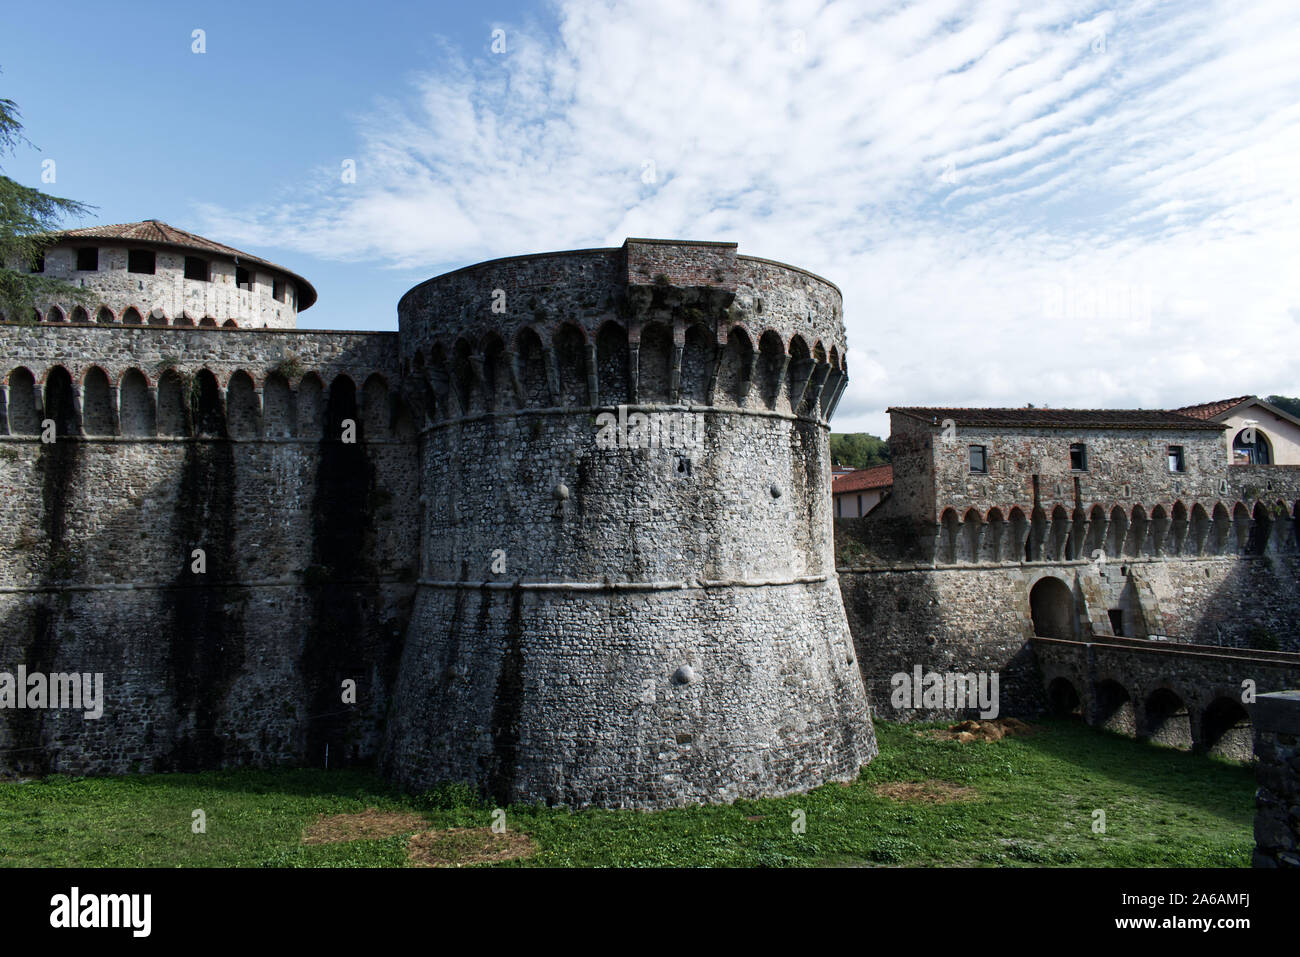 Ancient Firmafede medieval fortress in Sarzana, Italy. Rebuilt by Lorenzo il Magnifico in 1488 Stock Photo